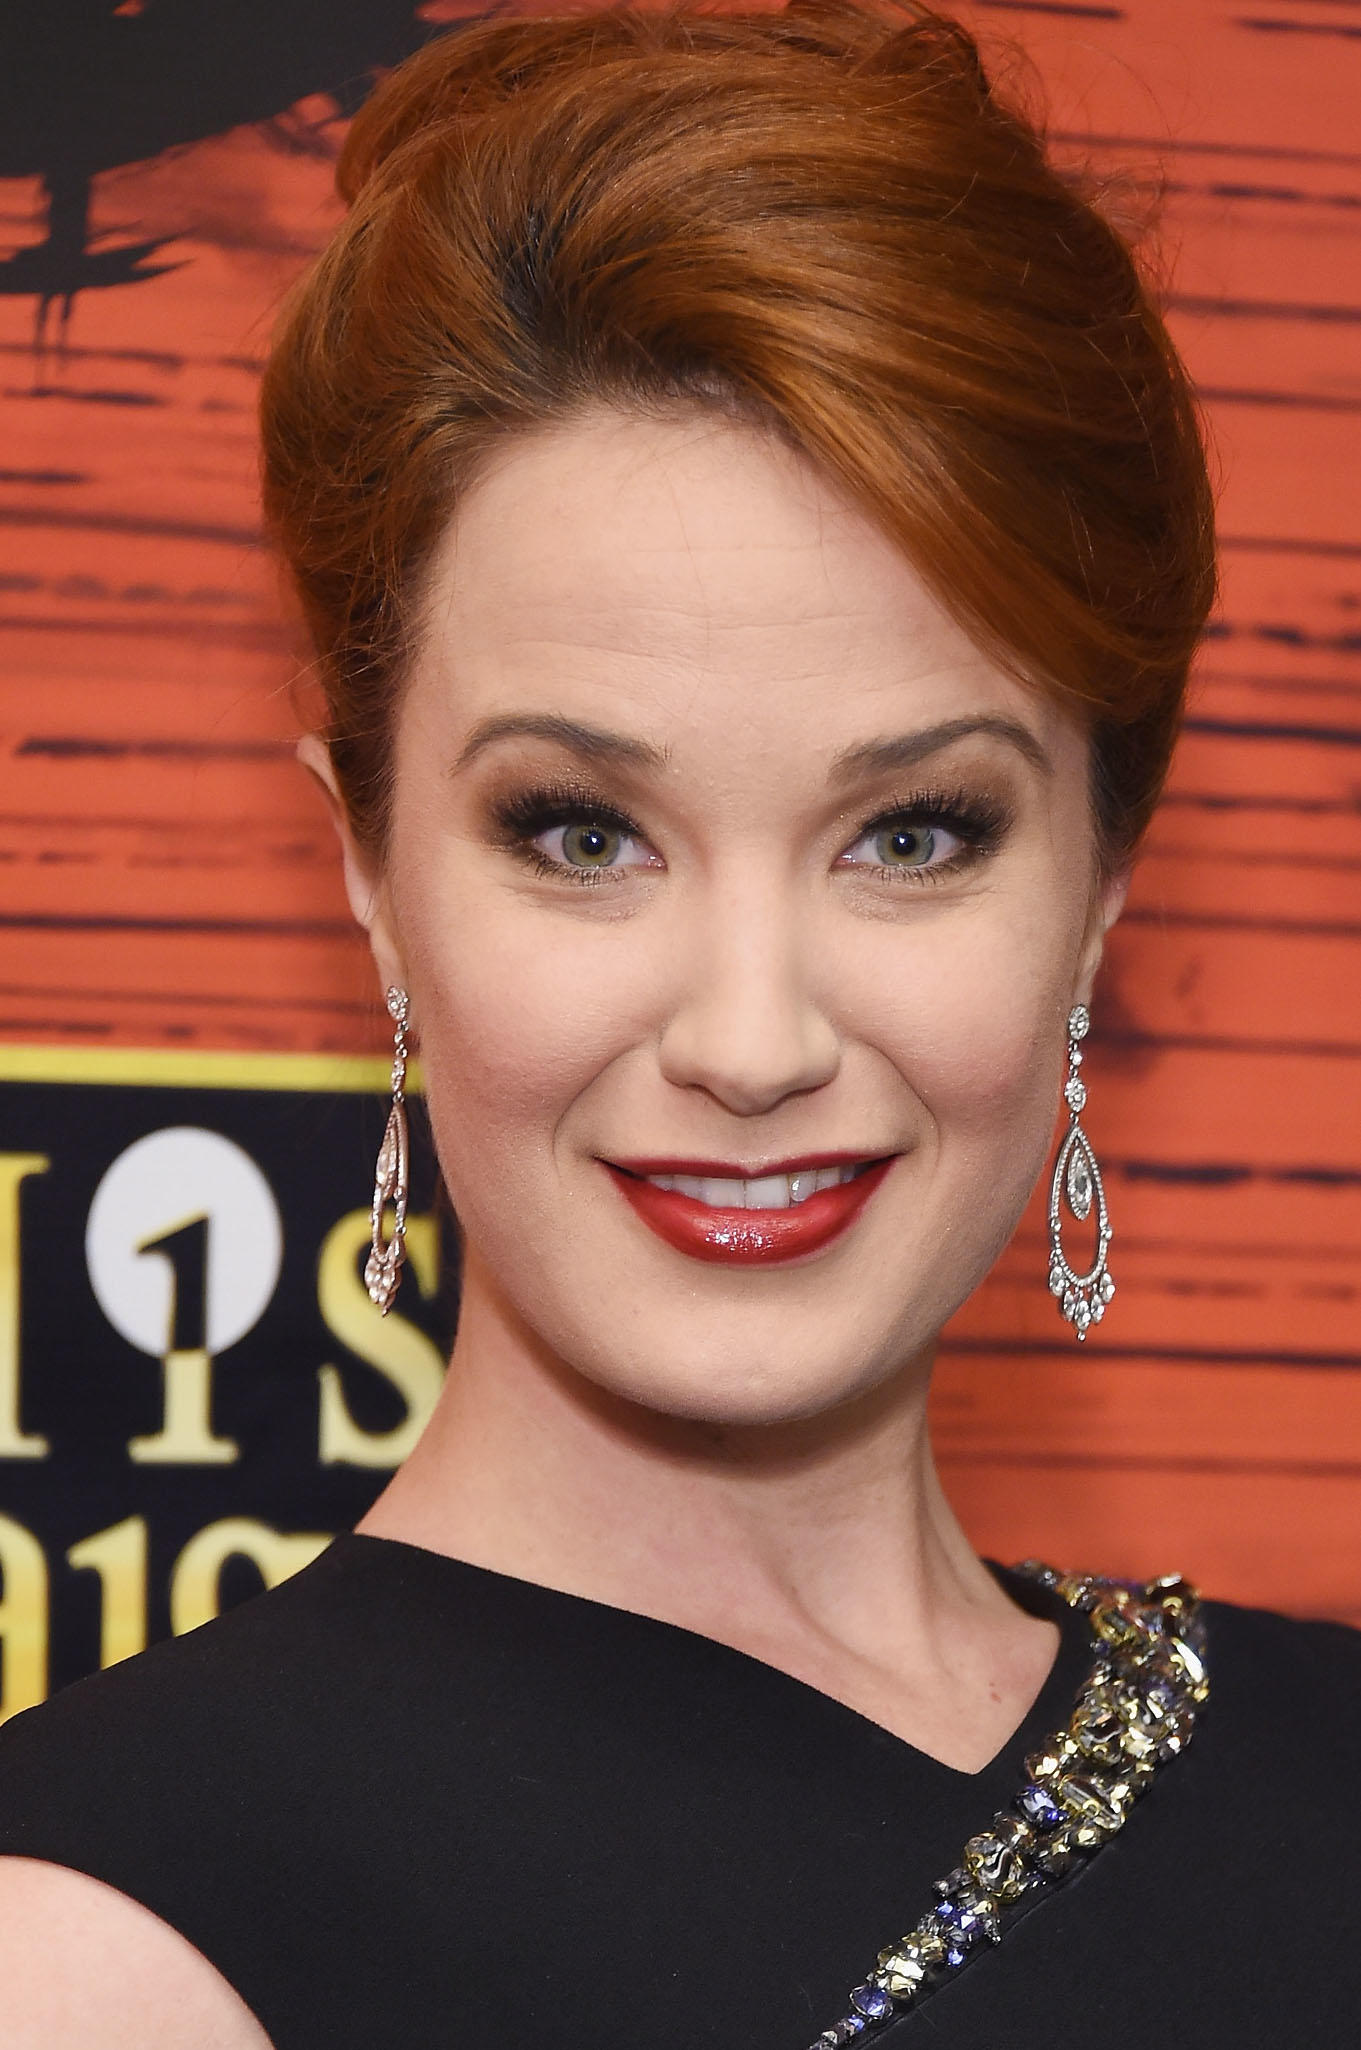 Sierra Boggess at the opening night of